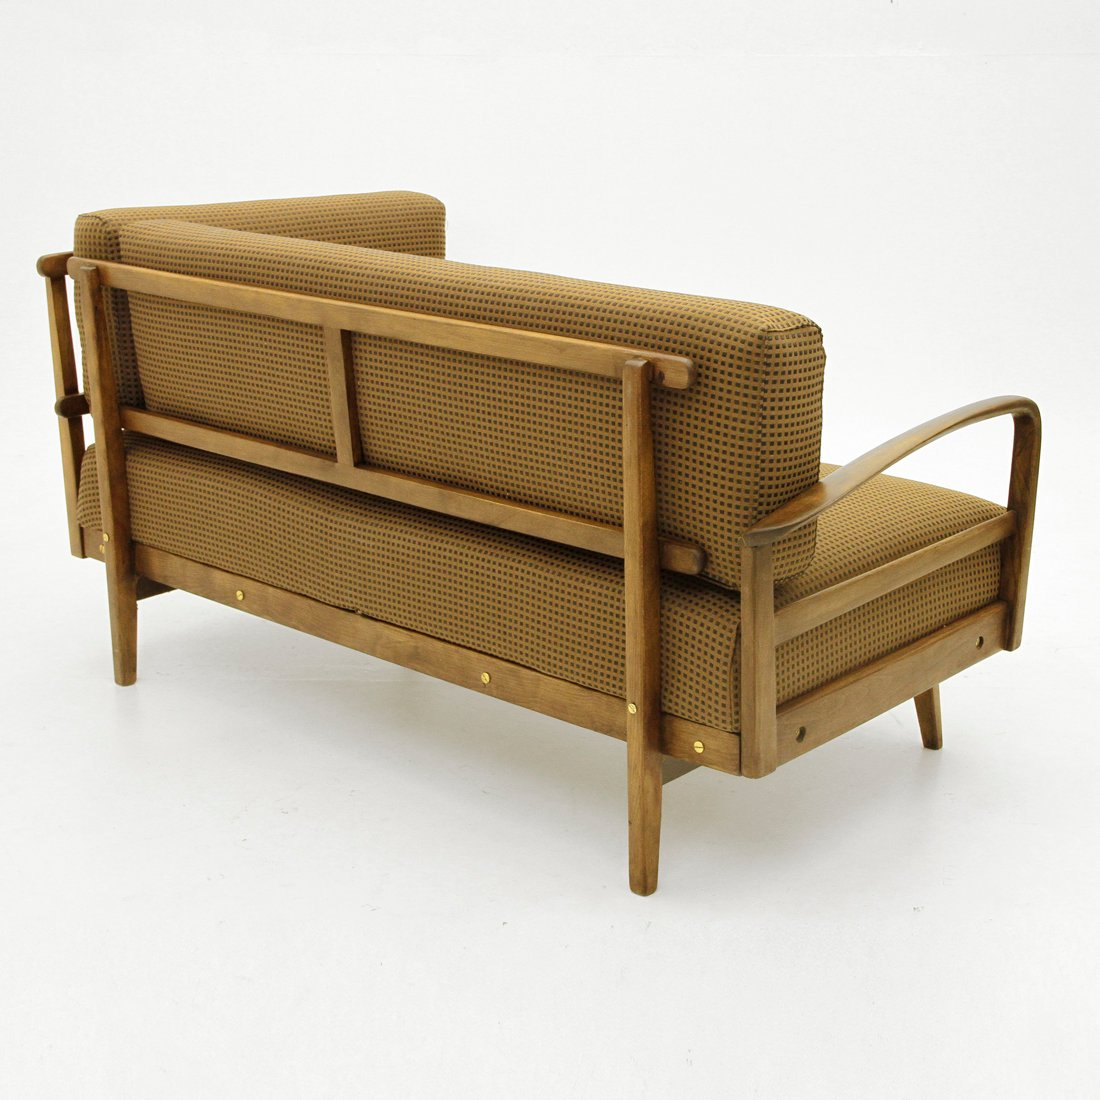 Italian Wooden Frame Sofa 1950s For Sale At Pamono